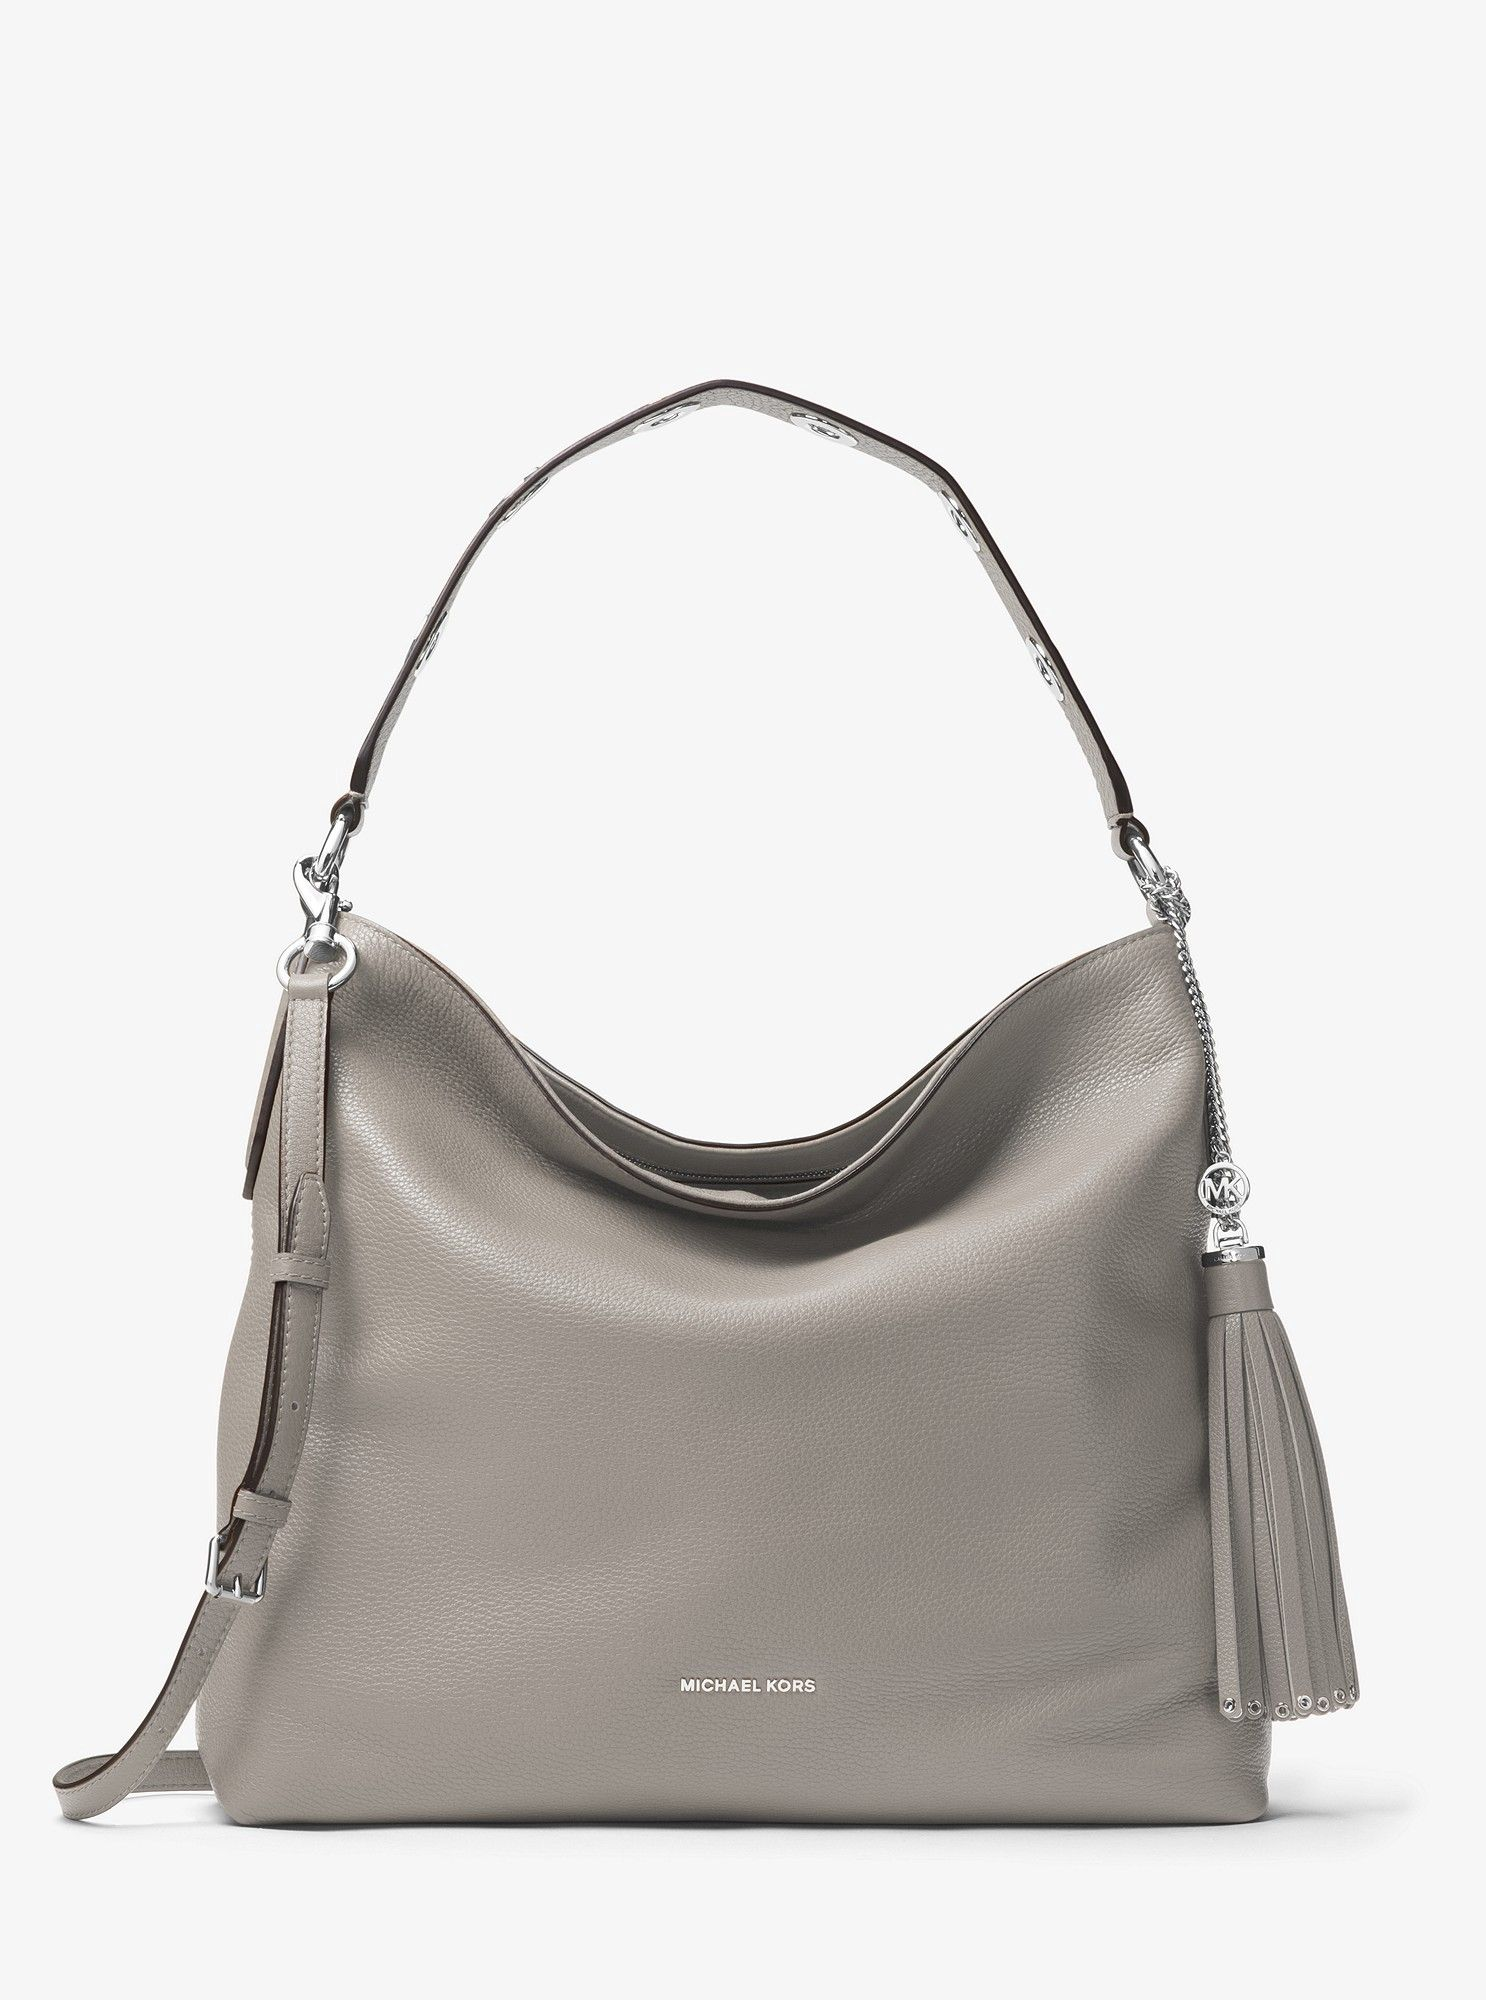 d701d01d9c71 Michael Kors Brooklyn Large Leather Shoulder Bag - Optic White ...